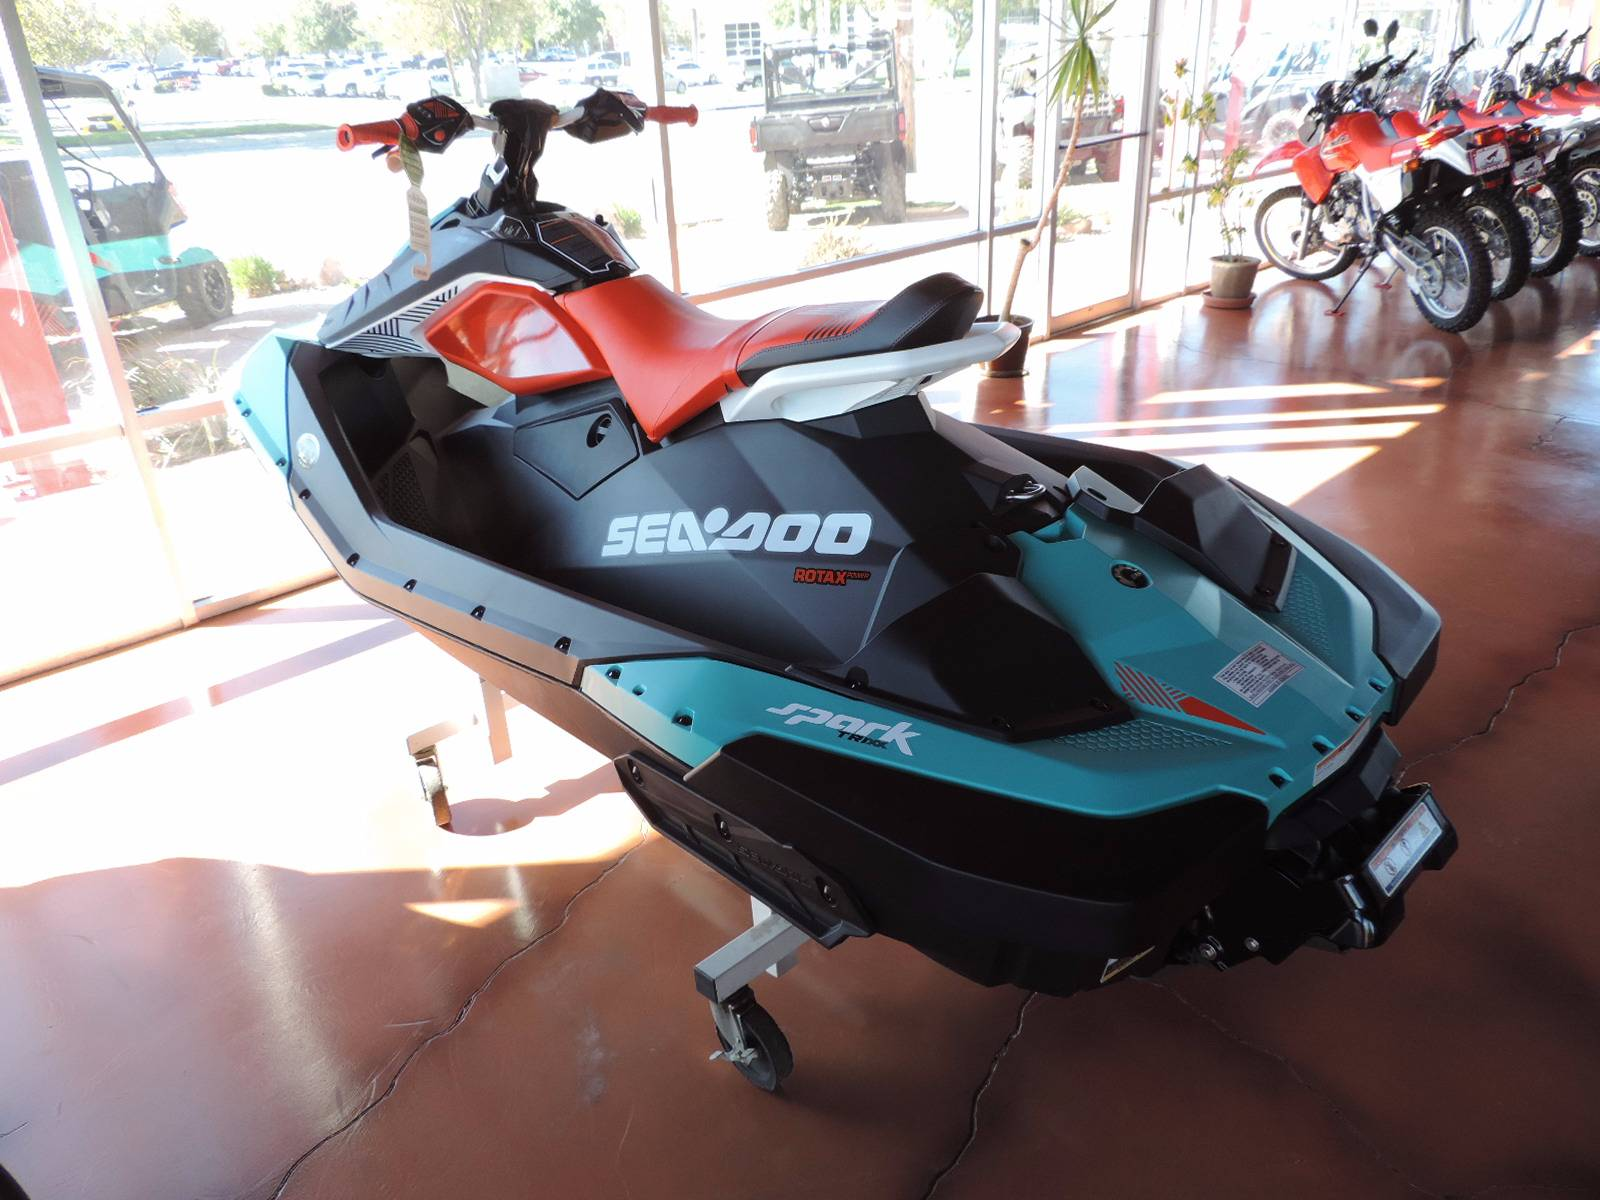 2017 Sea Doo Personal Watercraft Reviews Prices And Specs ...